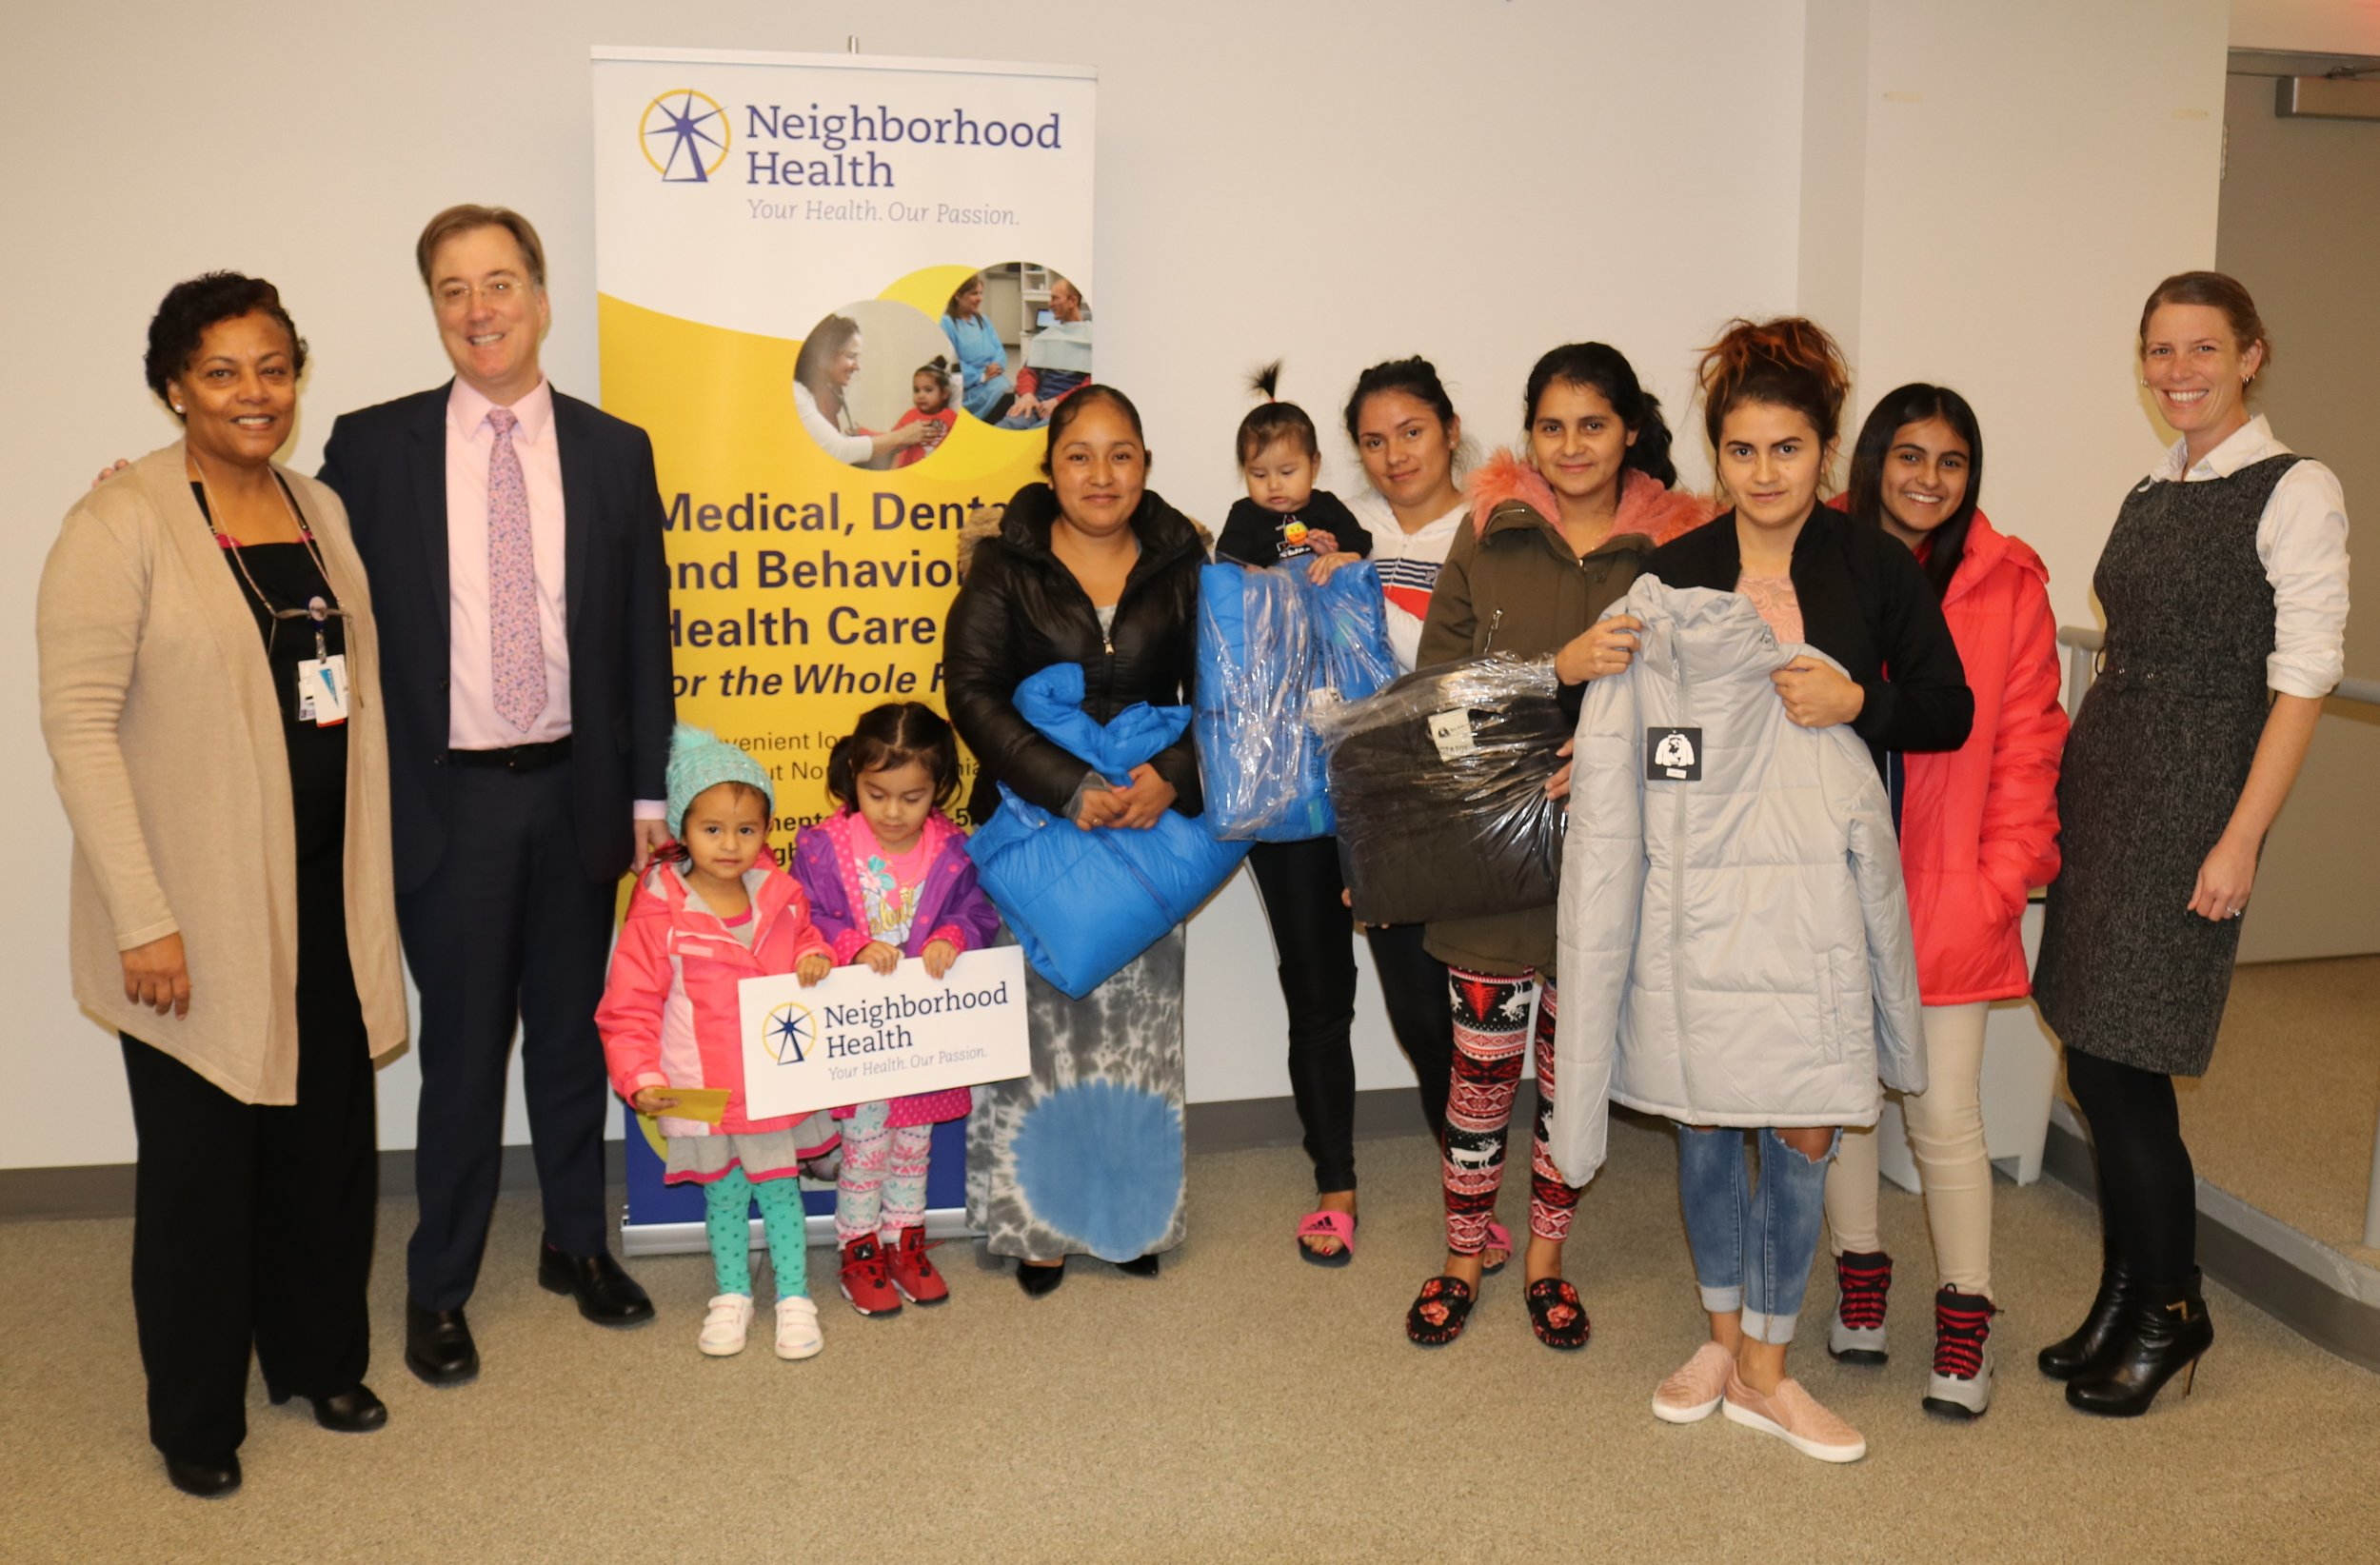 Christian Relief Services Executive Director Paul Krizek with Neighborhood Health Director of Behavioral Health Courtney Riggle-van Schagen, LCSW, right, and Family Support Supervisor Hirut Belete, left, with moms and children grateful to receive a new winter coat.